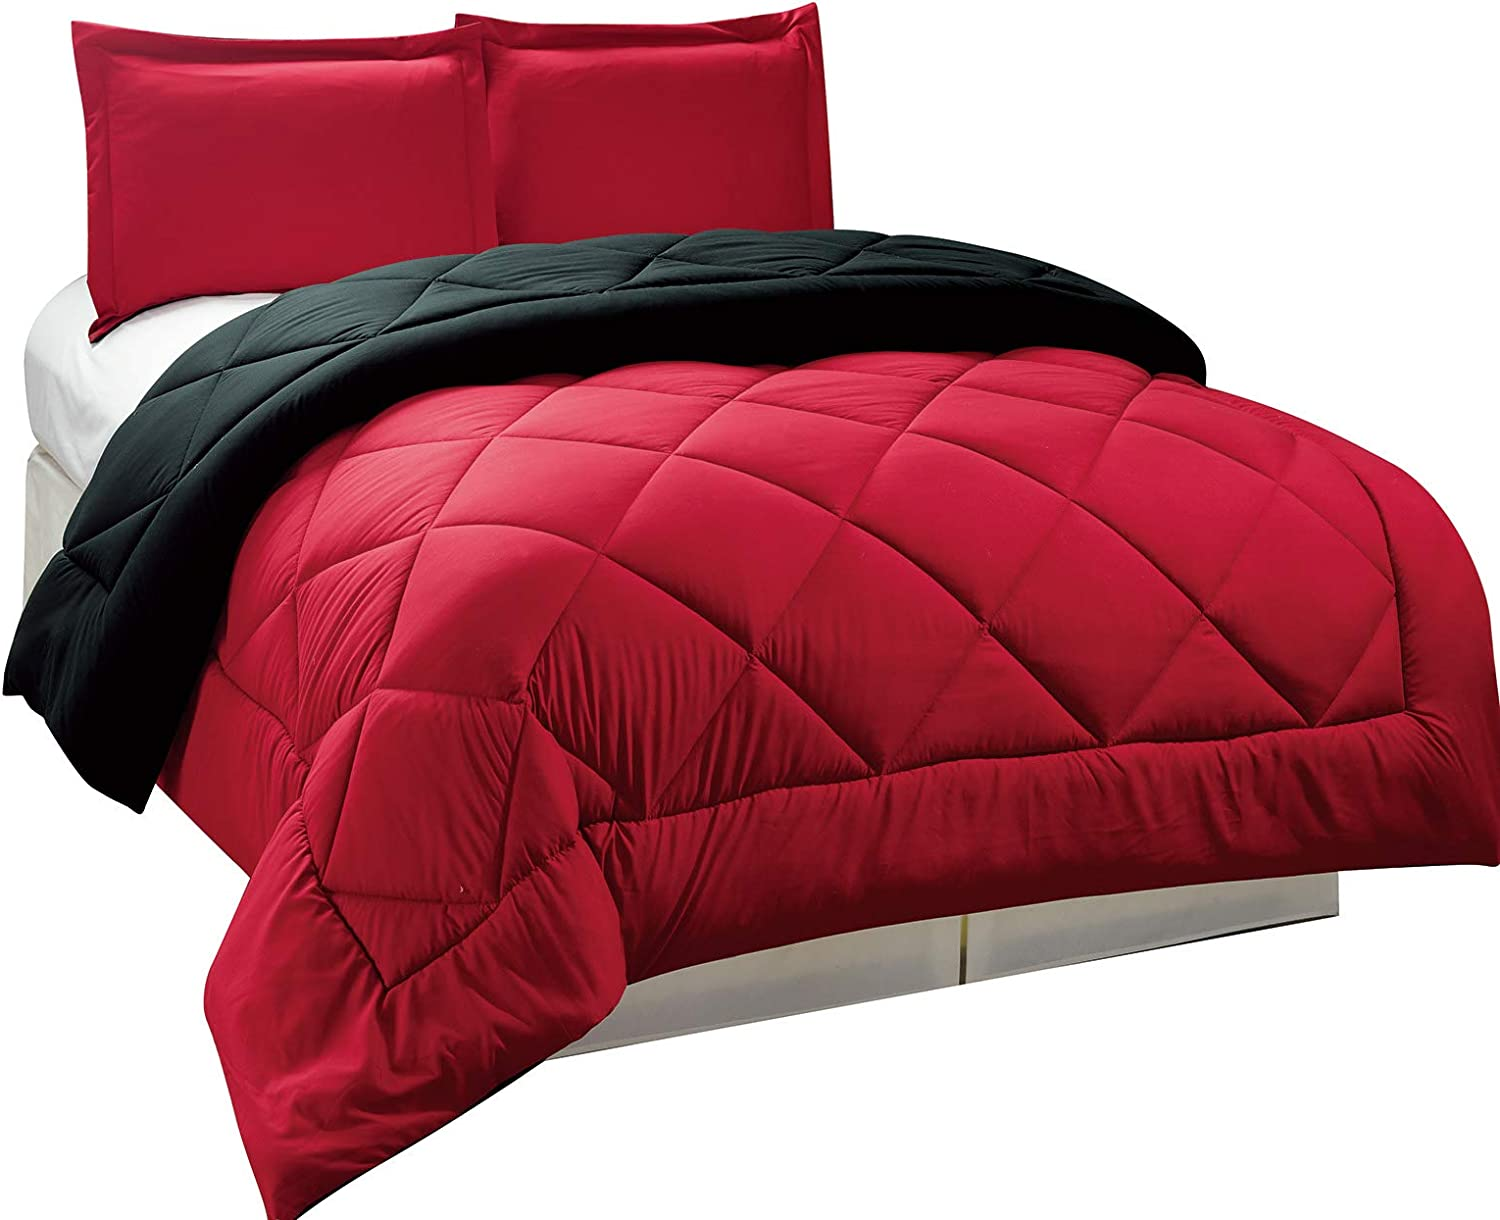 Legacy Decor 3pc Down Alternative, Reversible Comforter Set Red and Black, King Size